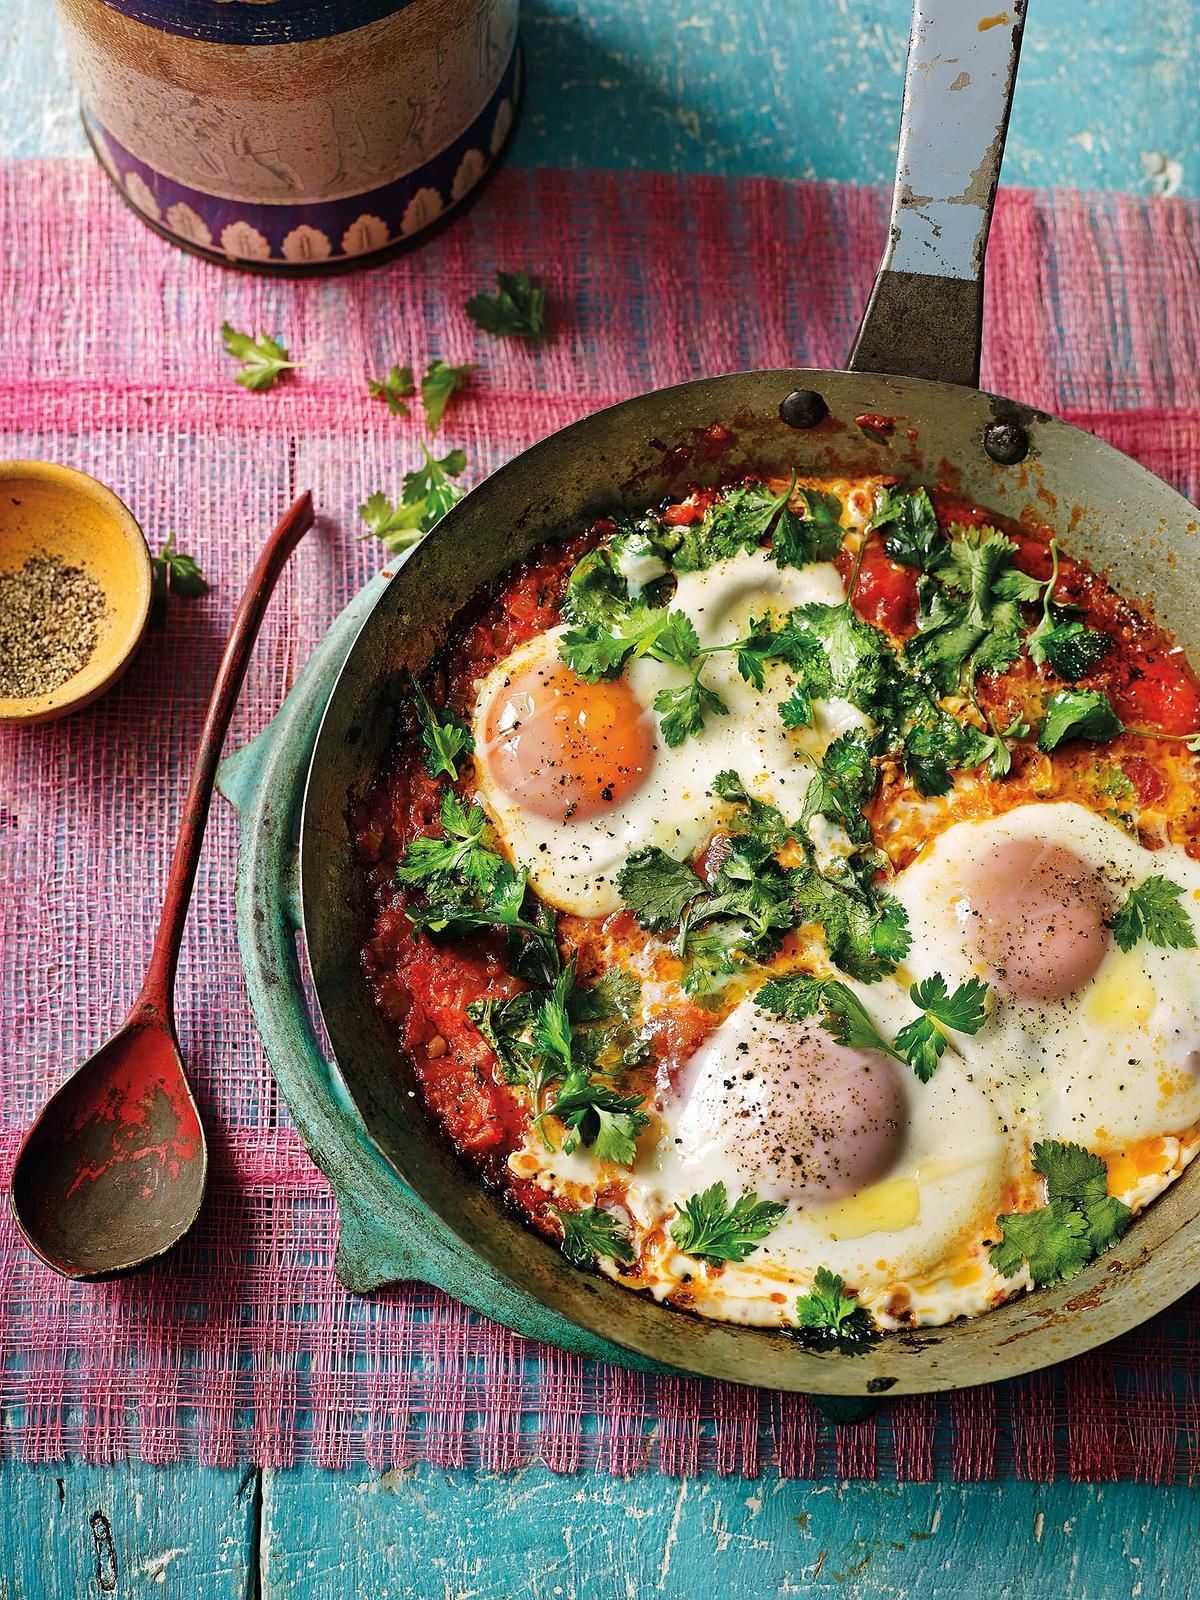 Watch José Pizarro's Baked Eggs With Jamon, Peas And Tomatoes Recipe video